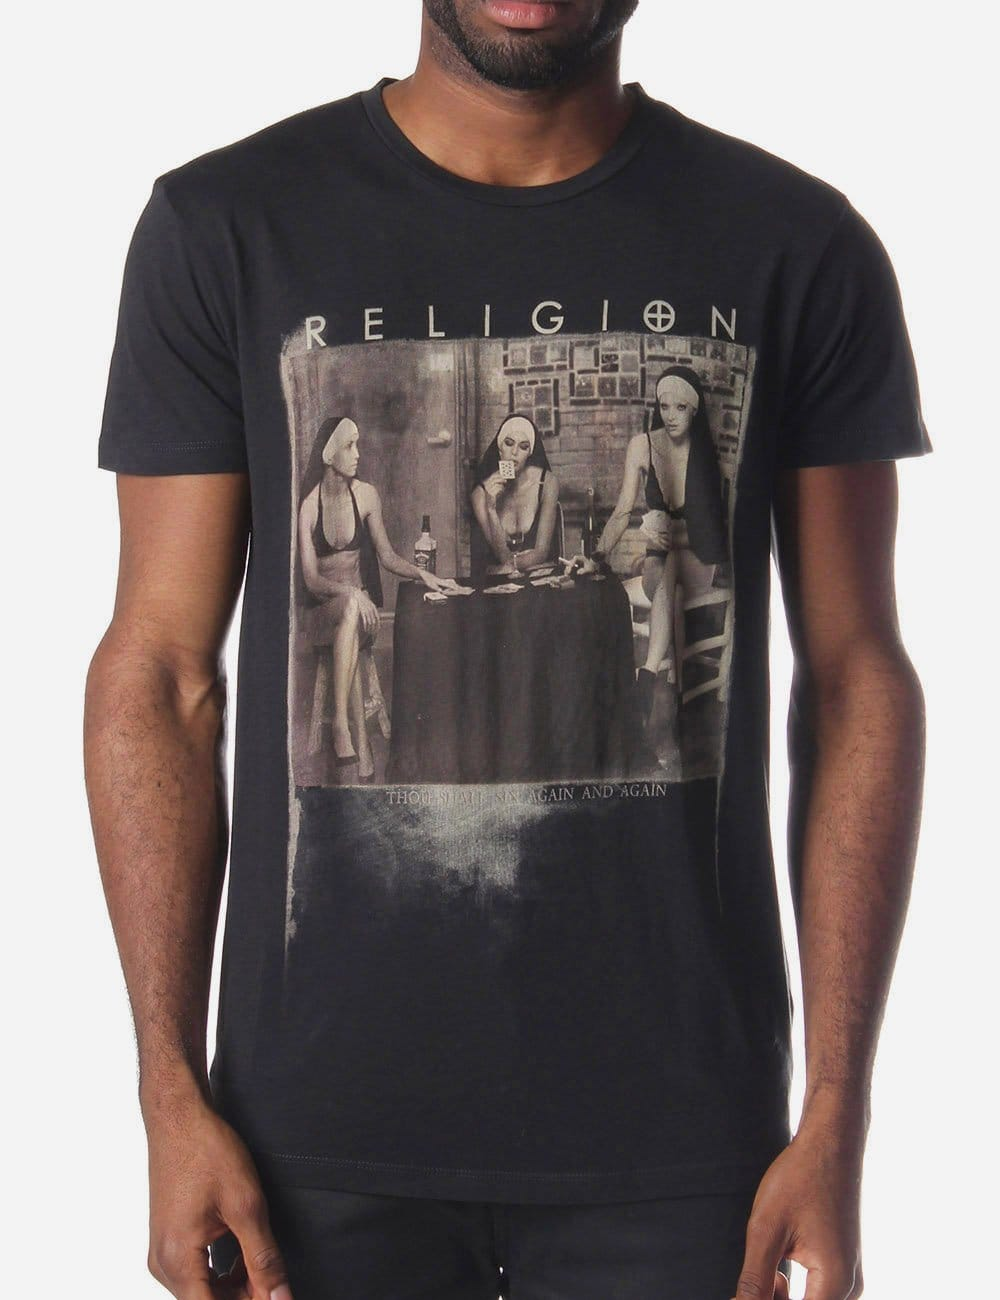 Religion Strip Poker Men S T Shirt Washed Black